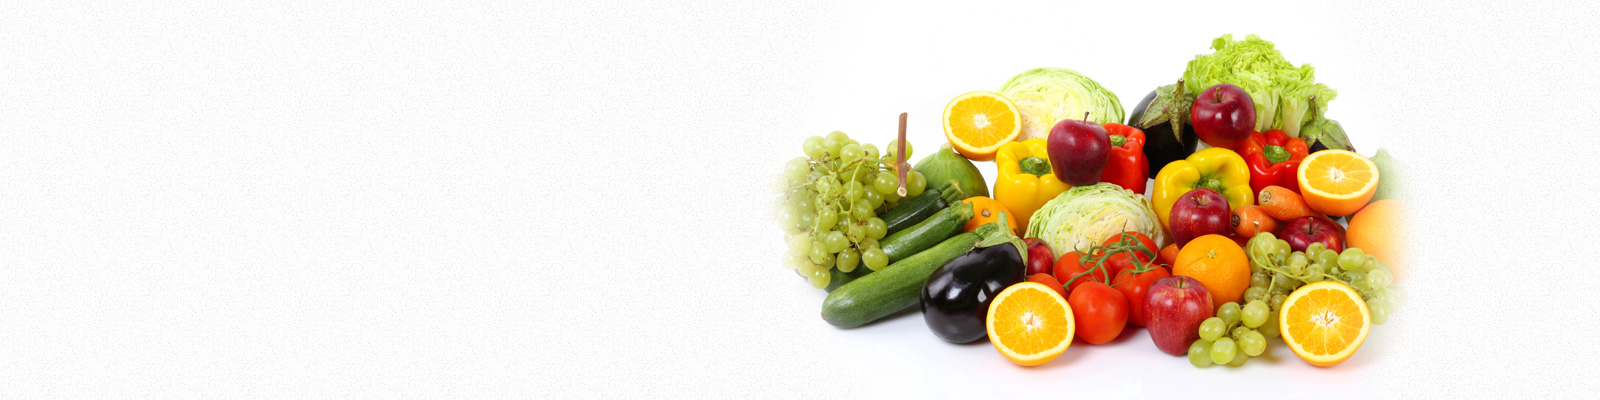 Organic and Healthy Foods